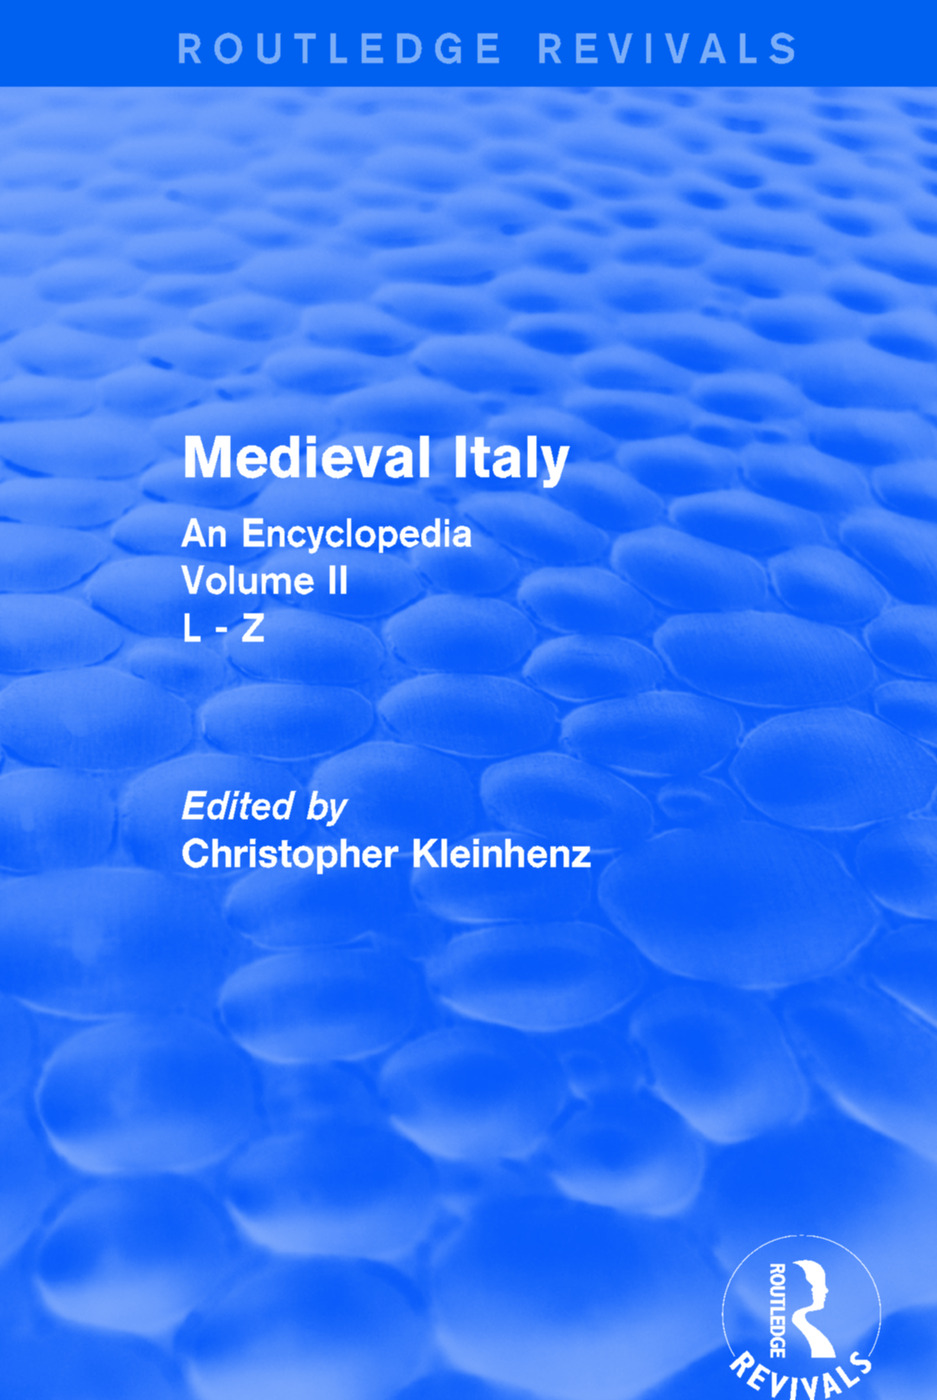 Routledge Revivals: Medieval Italy (2004): An Encyclopedia - Volume II, 1st Edition (Paperback) book cover